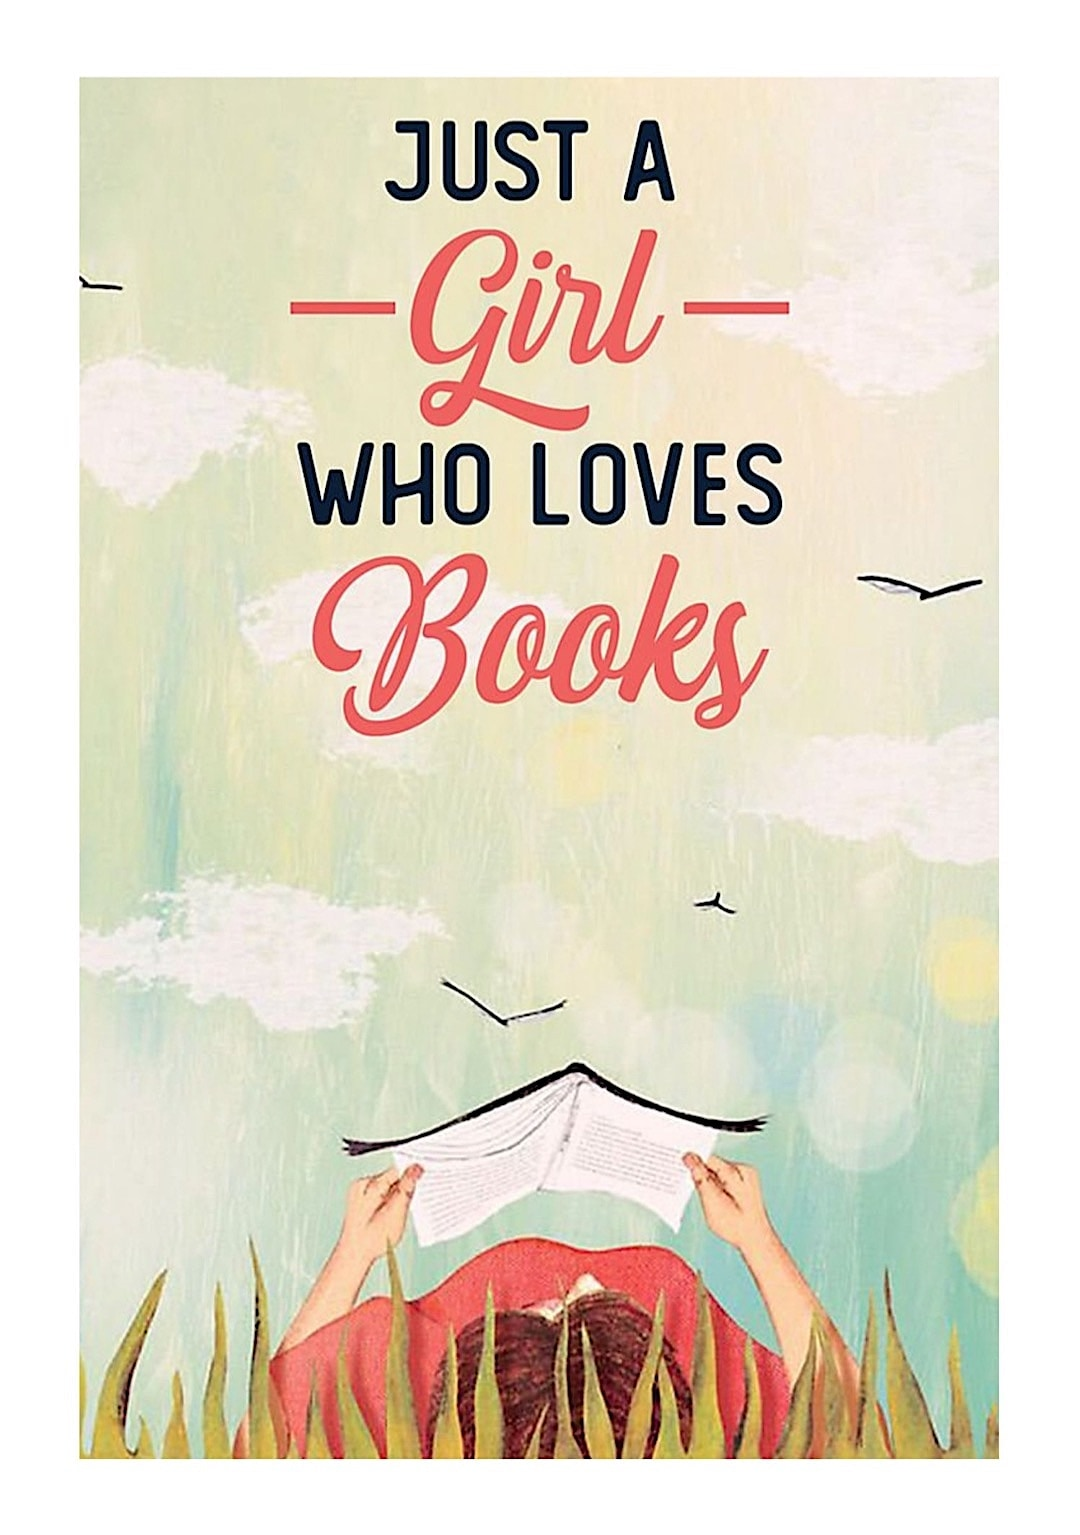 Just a girl who reads - best read posters